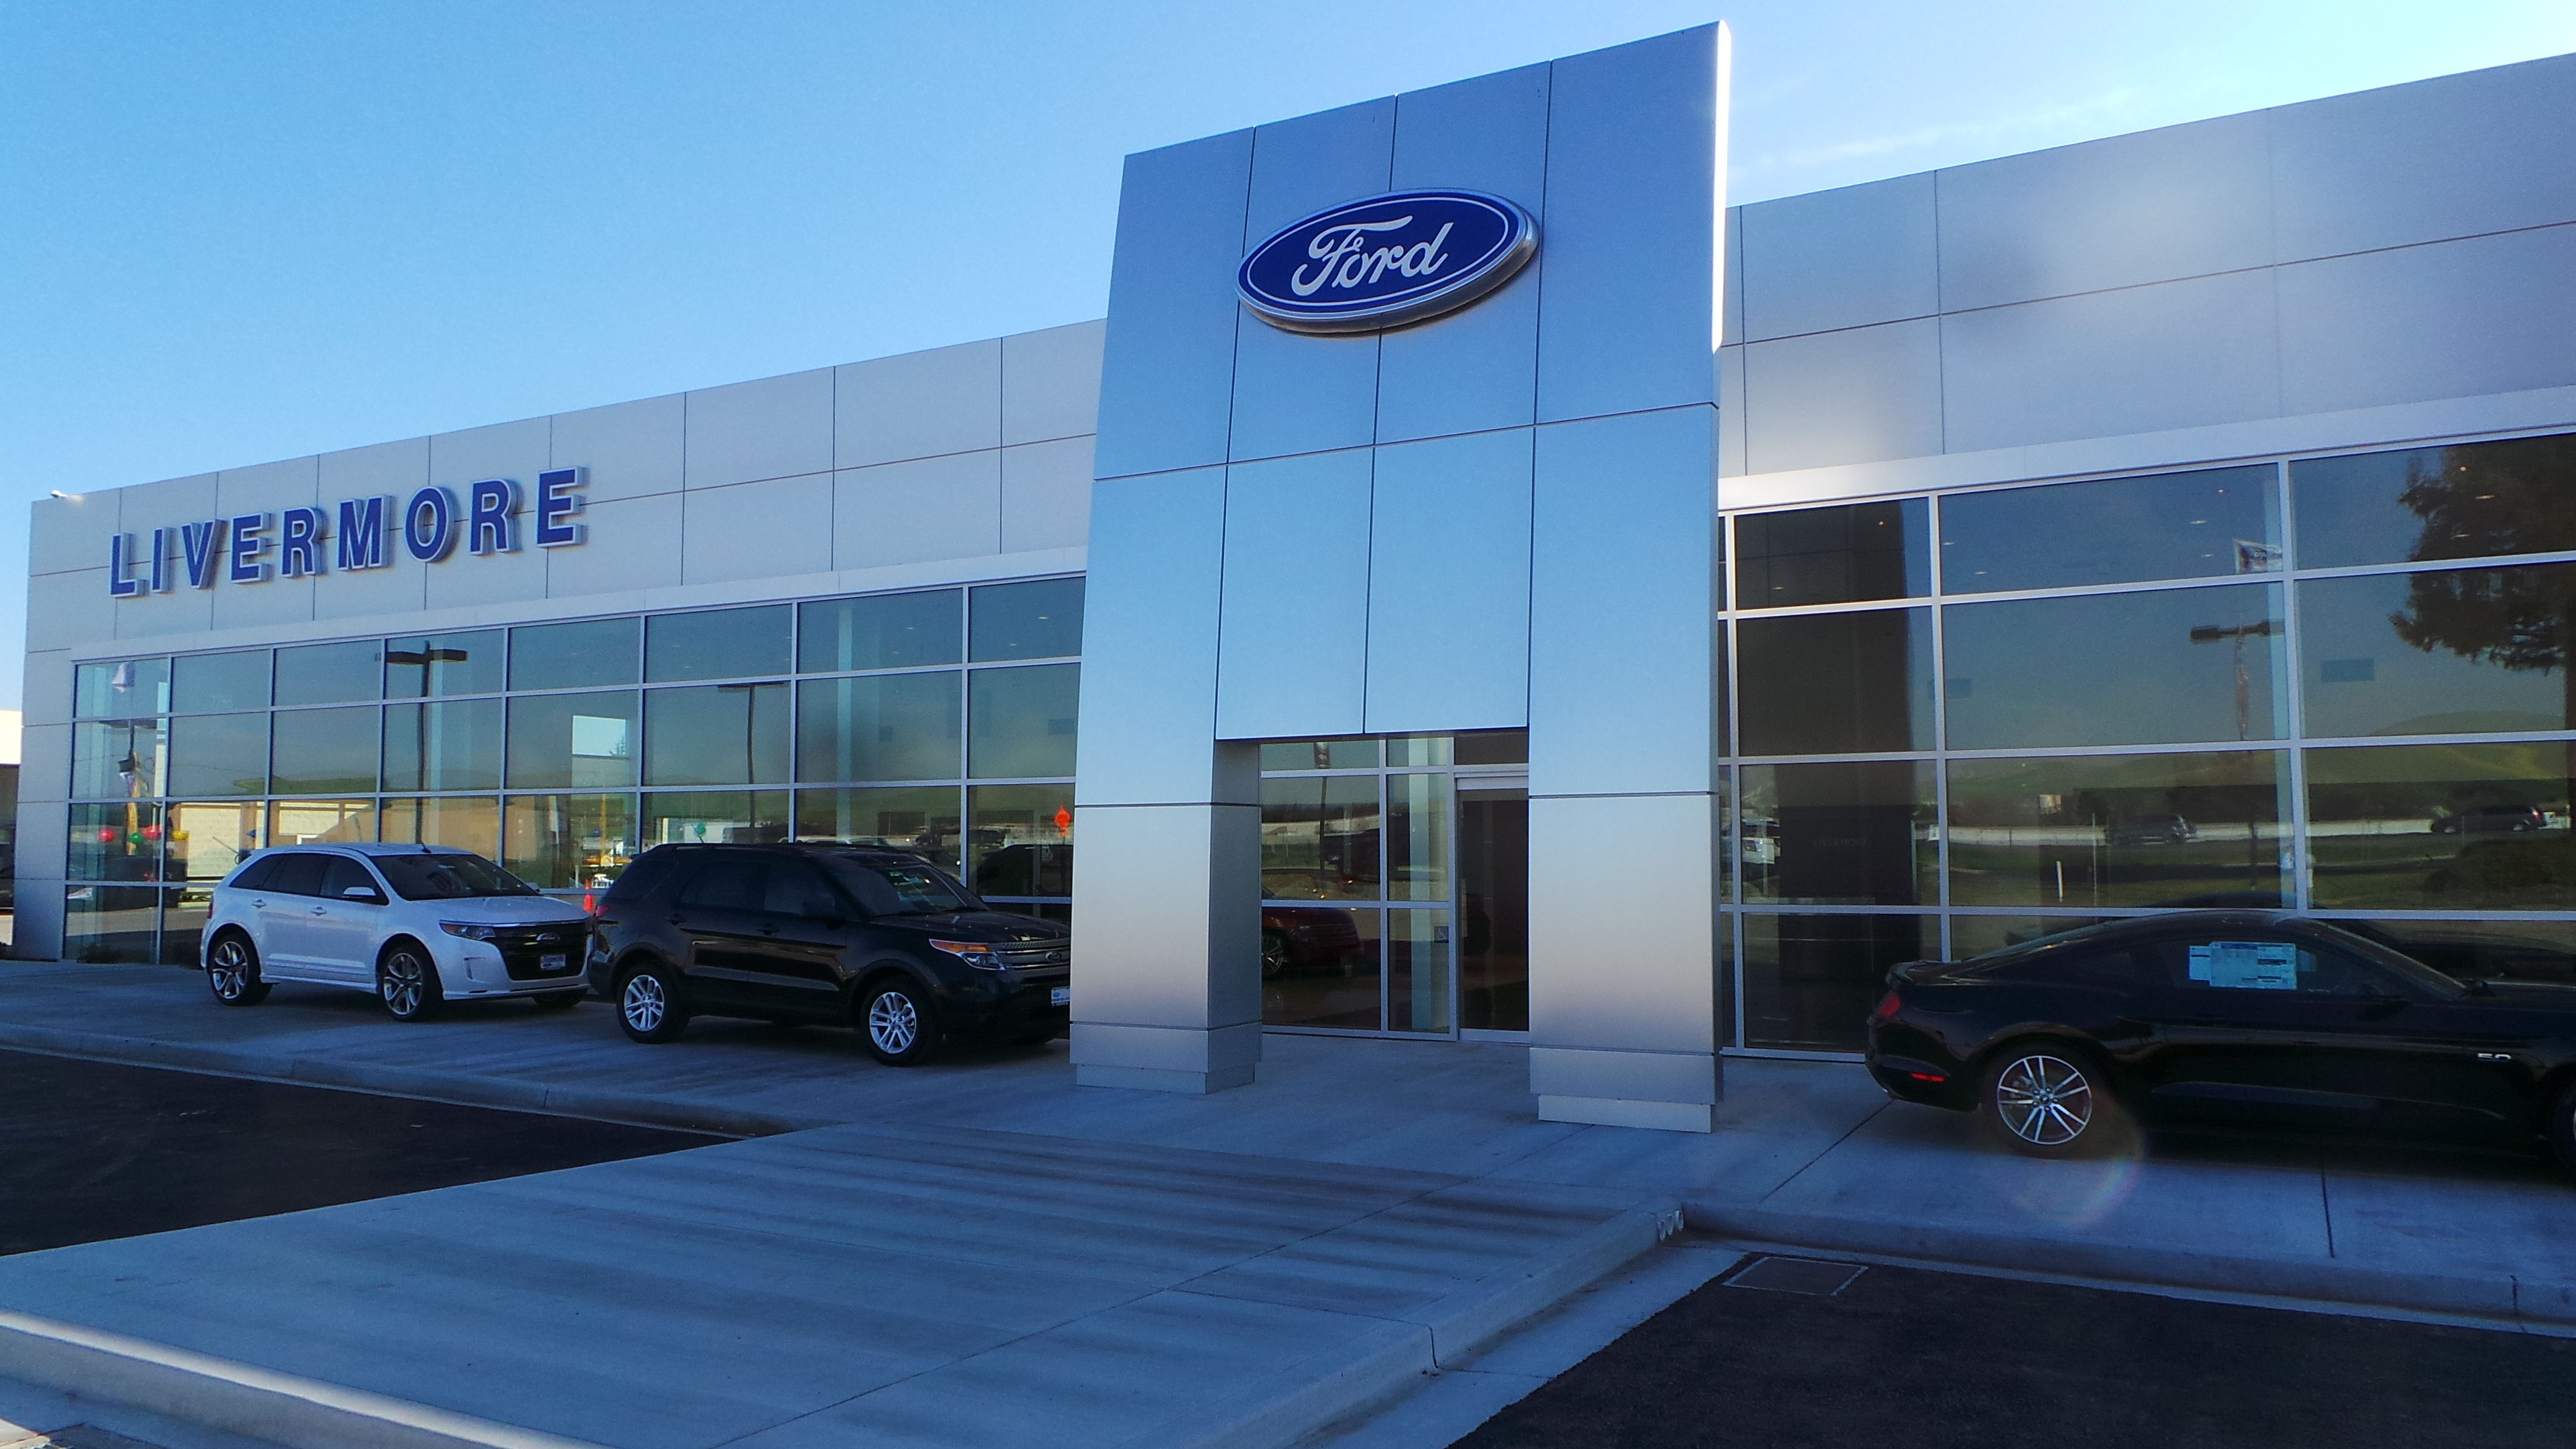 Livermore Ford Lincoln 2266 Kitty Hawk Rd Livermore CA YP